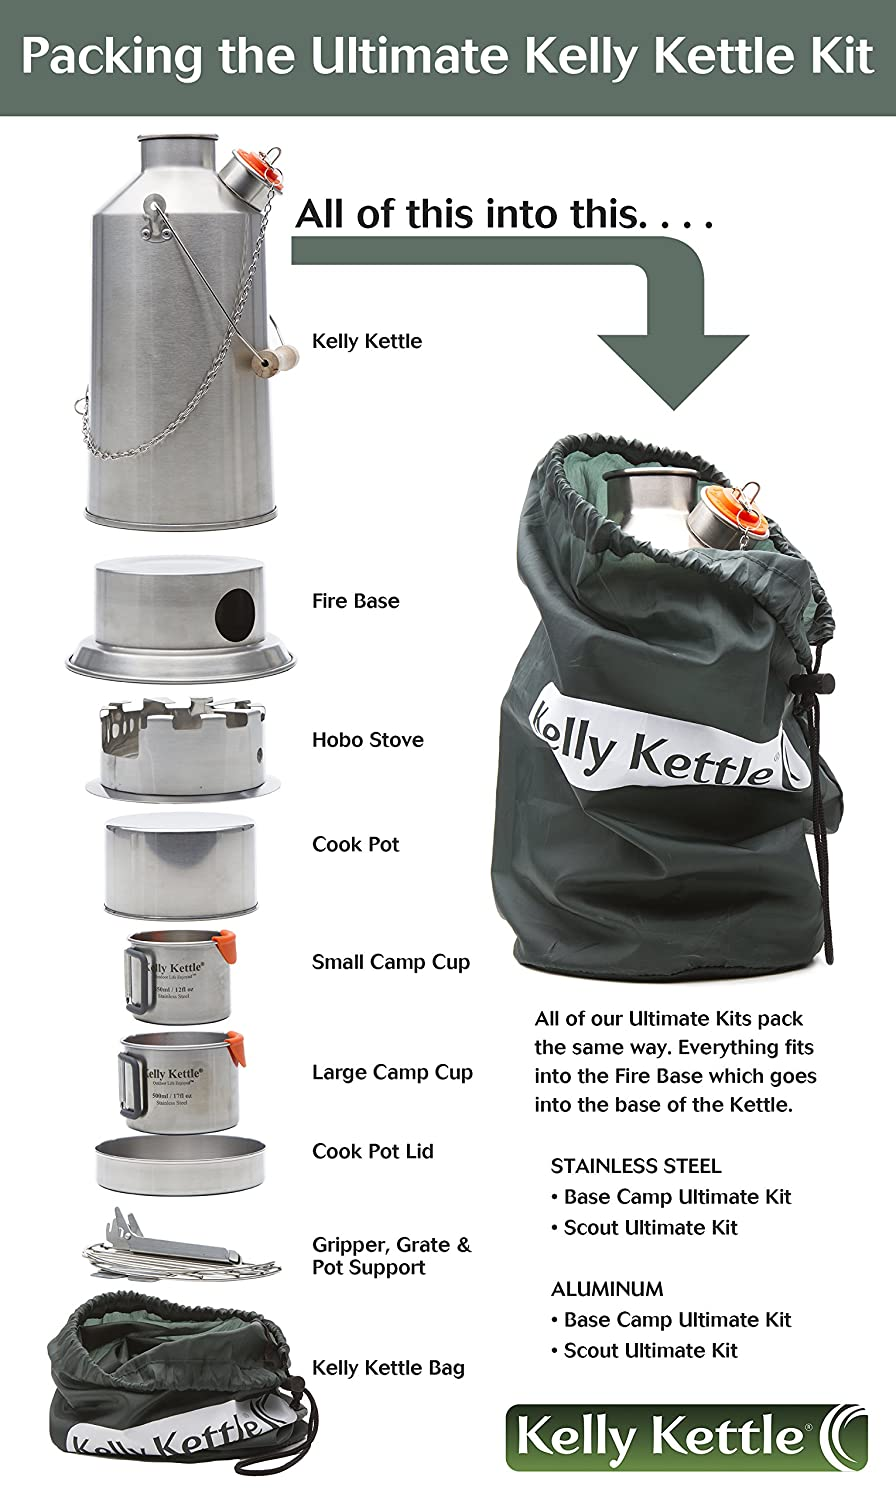 Kelly Kettle Scout 41 oz. Anodized Aluminum Ultimate Kit 1.2 LTR Rocket Stove Boils Water Ultra Fast with just Sticks Twigs. for Camping, Fishing, Scouts, Hunting, Emergencies, Hurricanes, Tornados